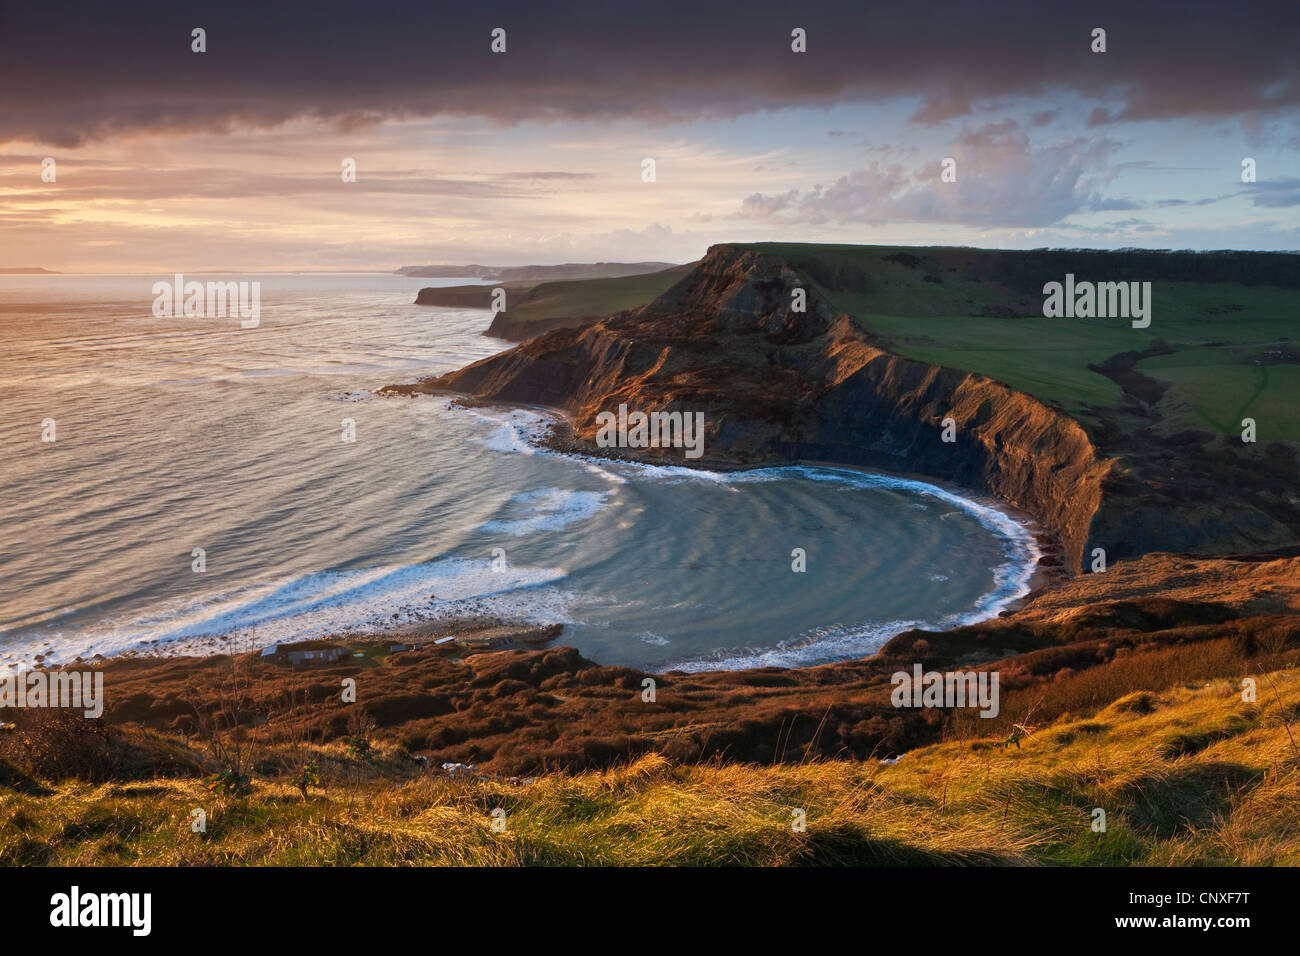 Storm light illuminates Chapmans Pool and Houns Tout cliff, viewed from St Aldhelm's Head, Dorset - Stock Image